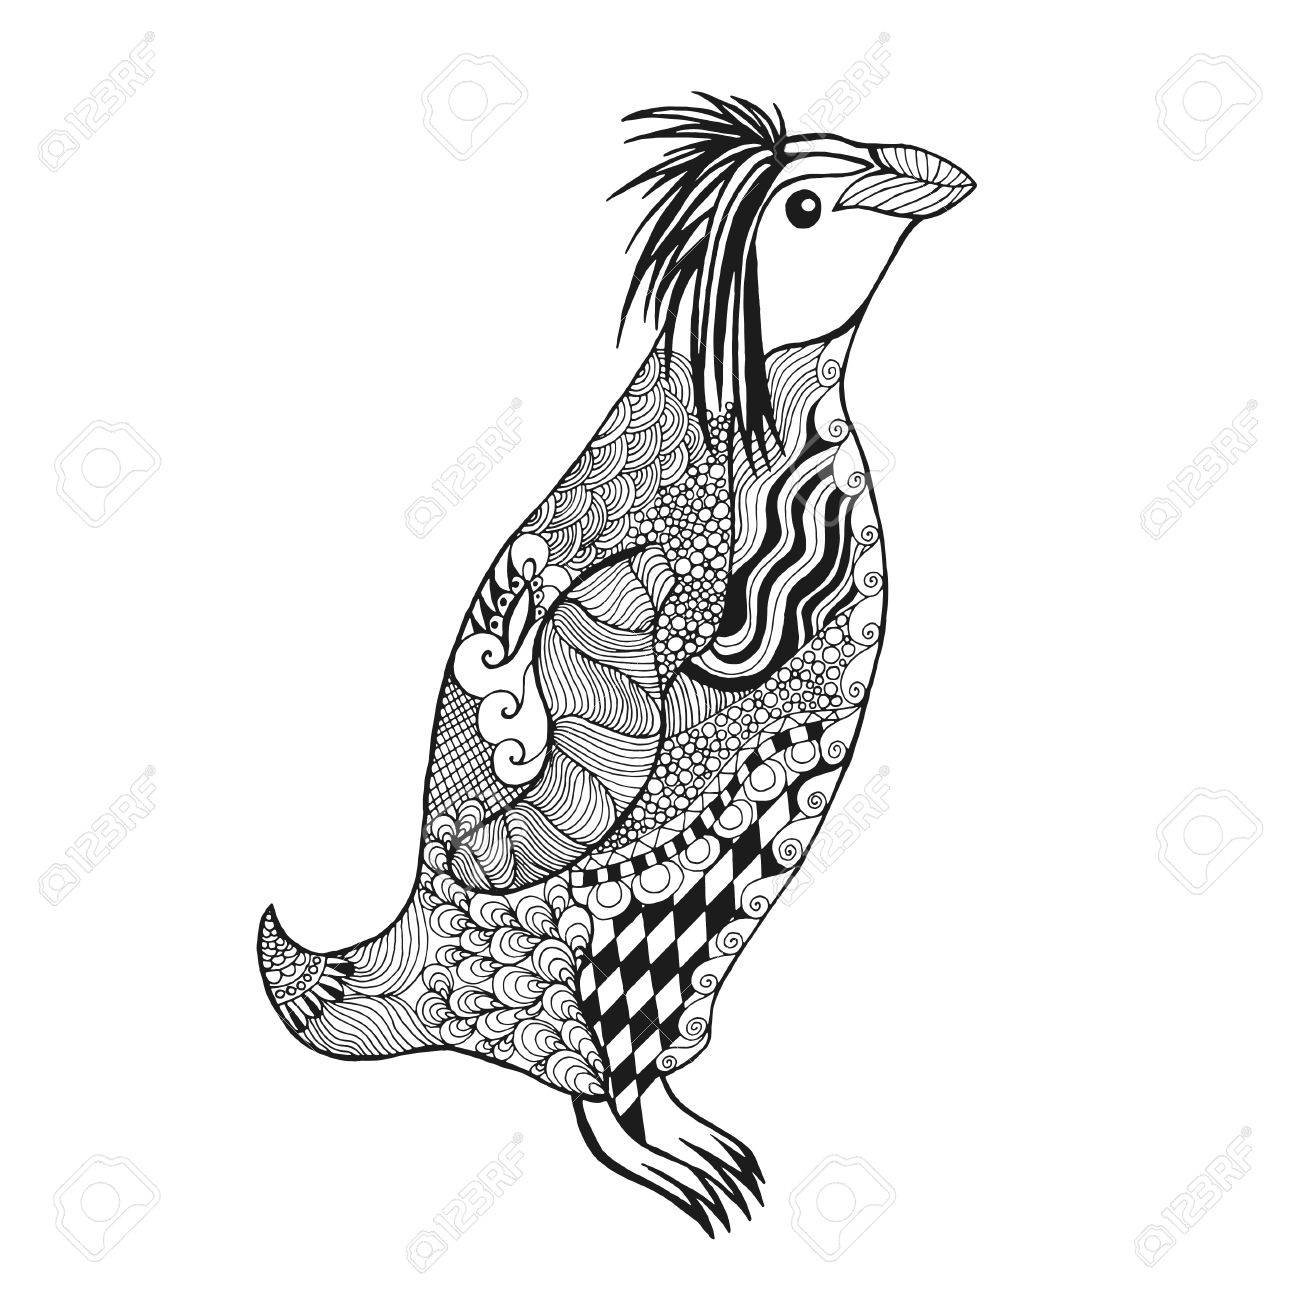 penguin antistress coloring page black white hand drawn